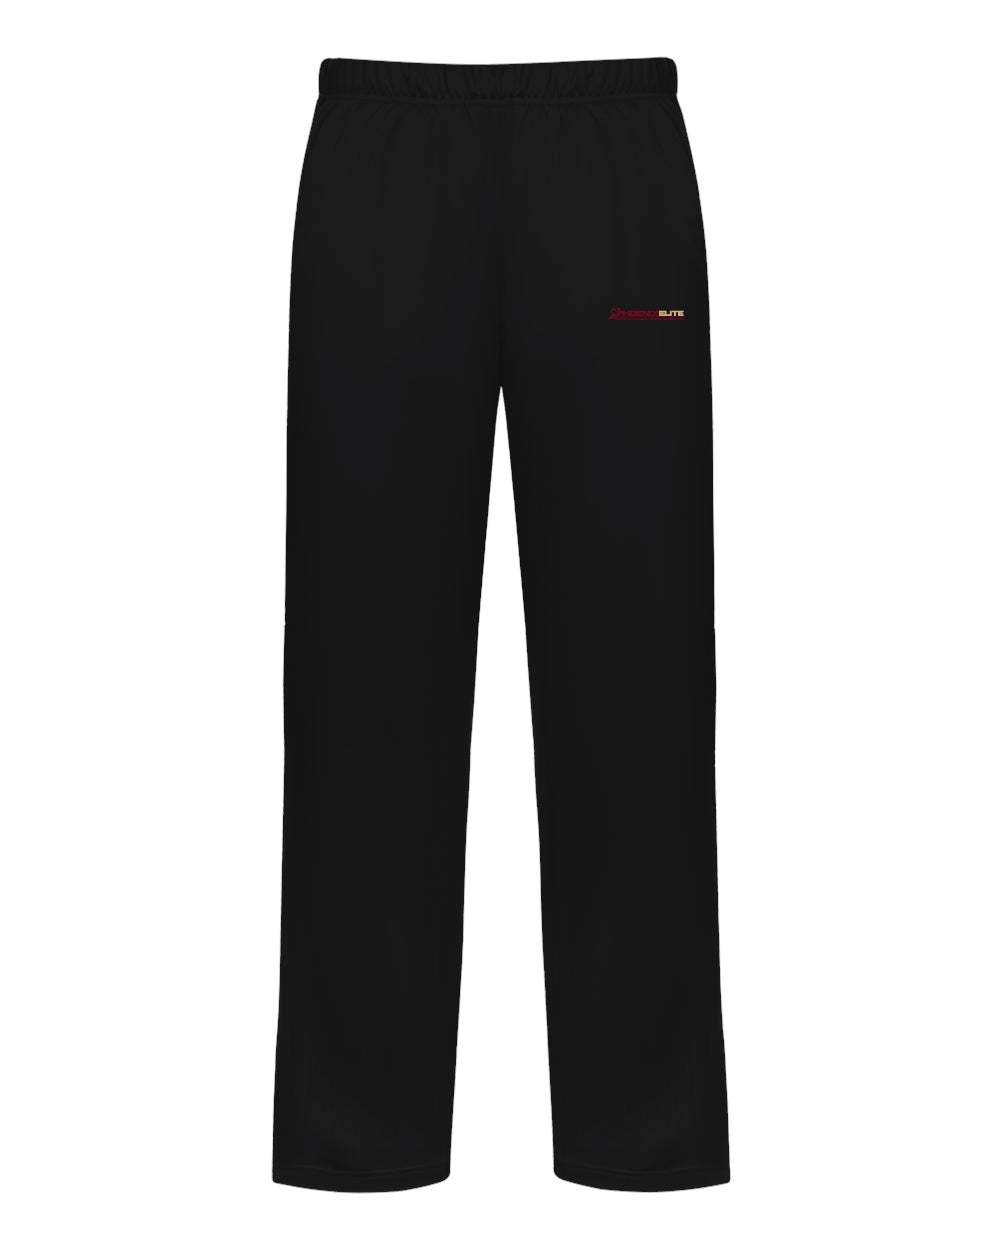 Phoenix Elite 2017 Winter Performance Pants